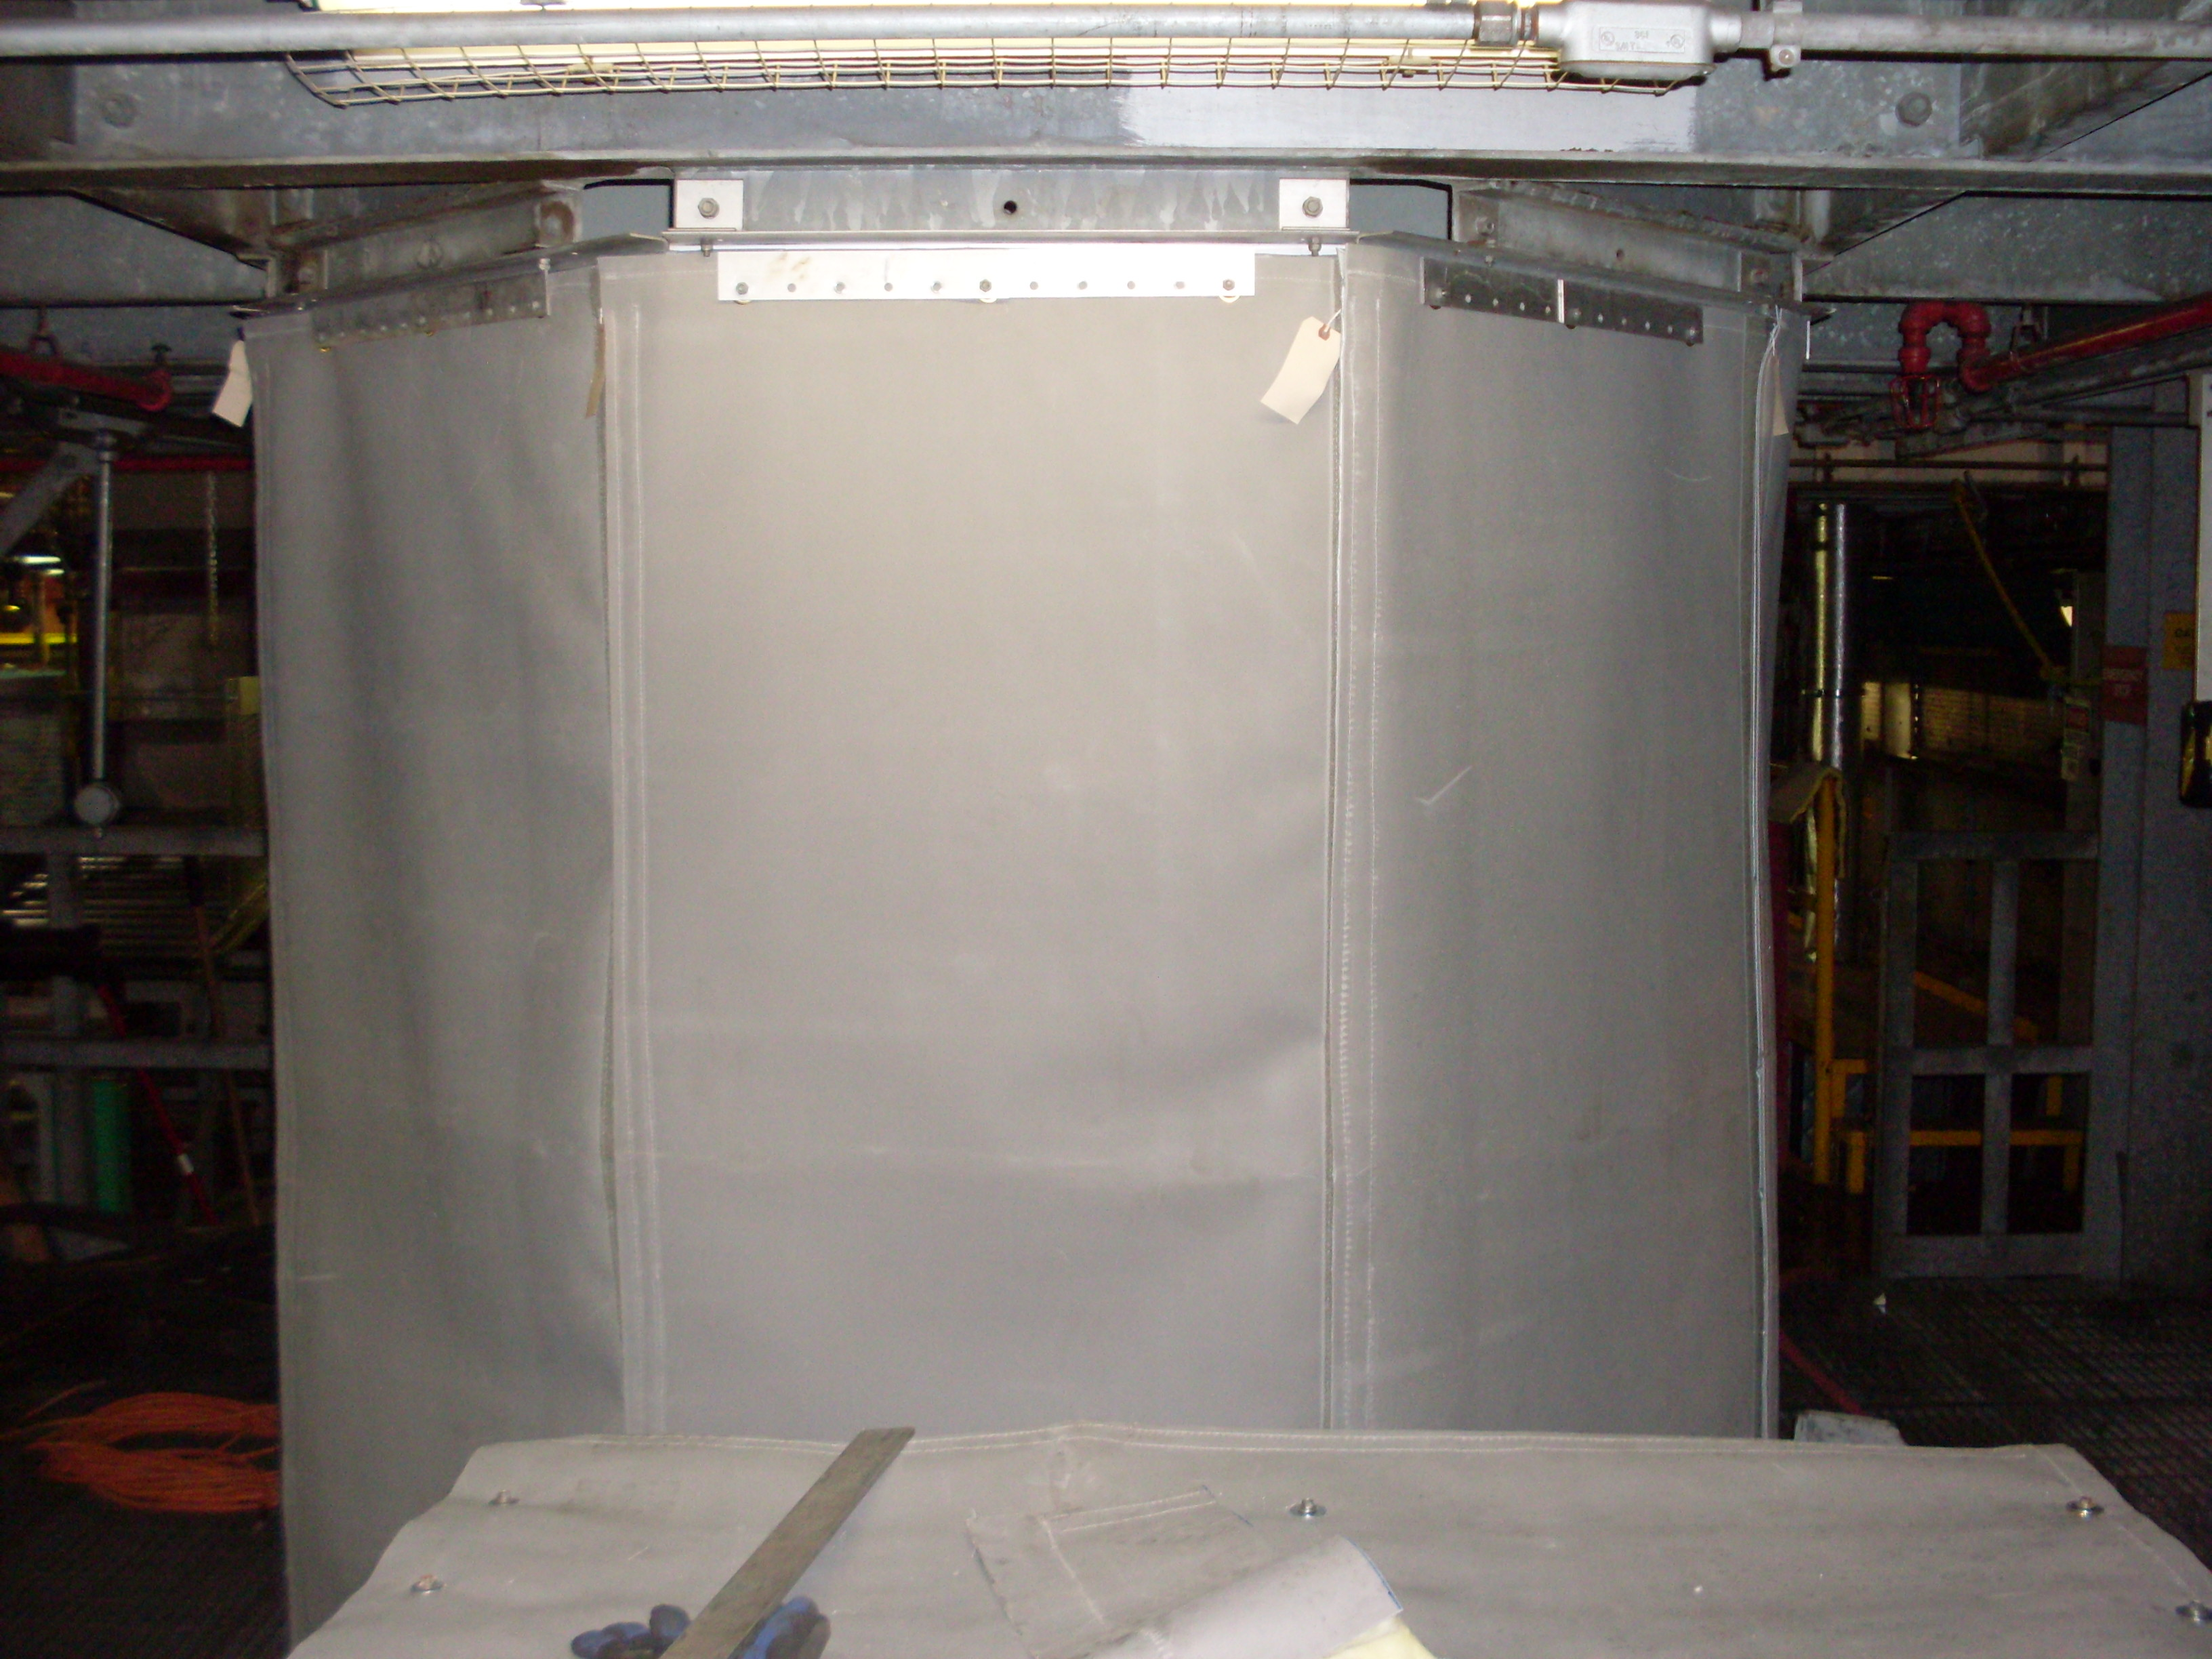 aes llc is able to design fabricate and install a wide variety of sound reducing partitions curtains and blankets we specialize in industrial sound